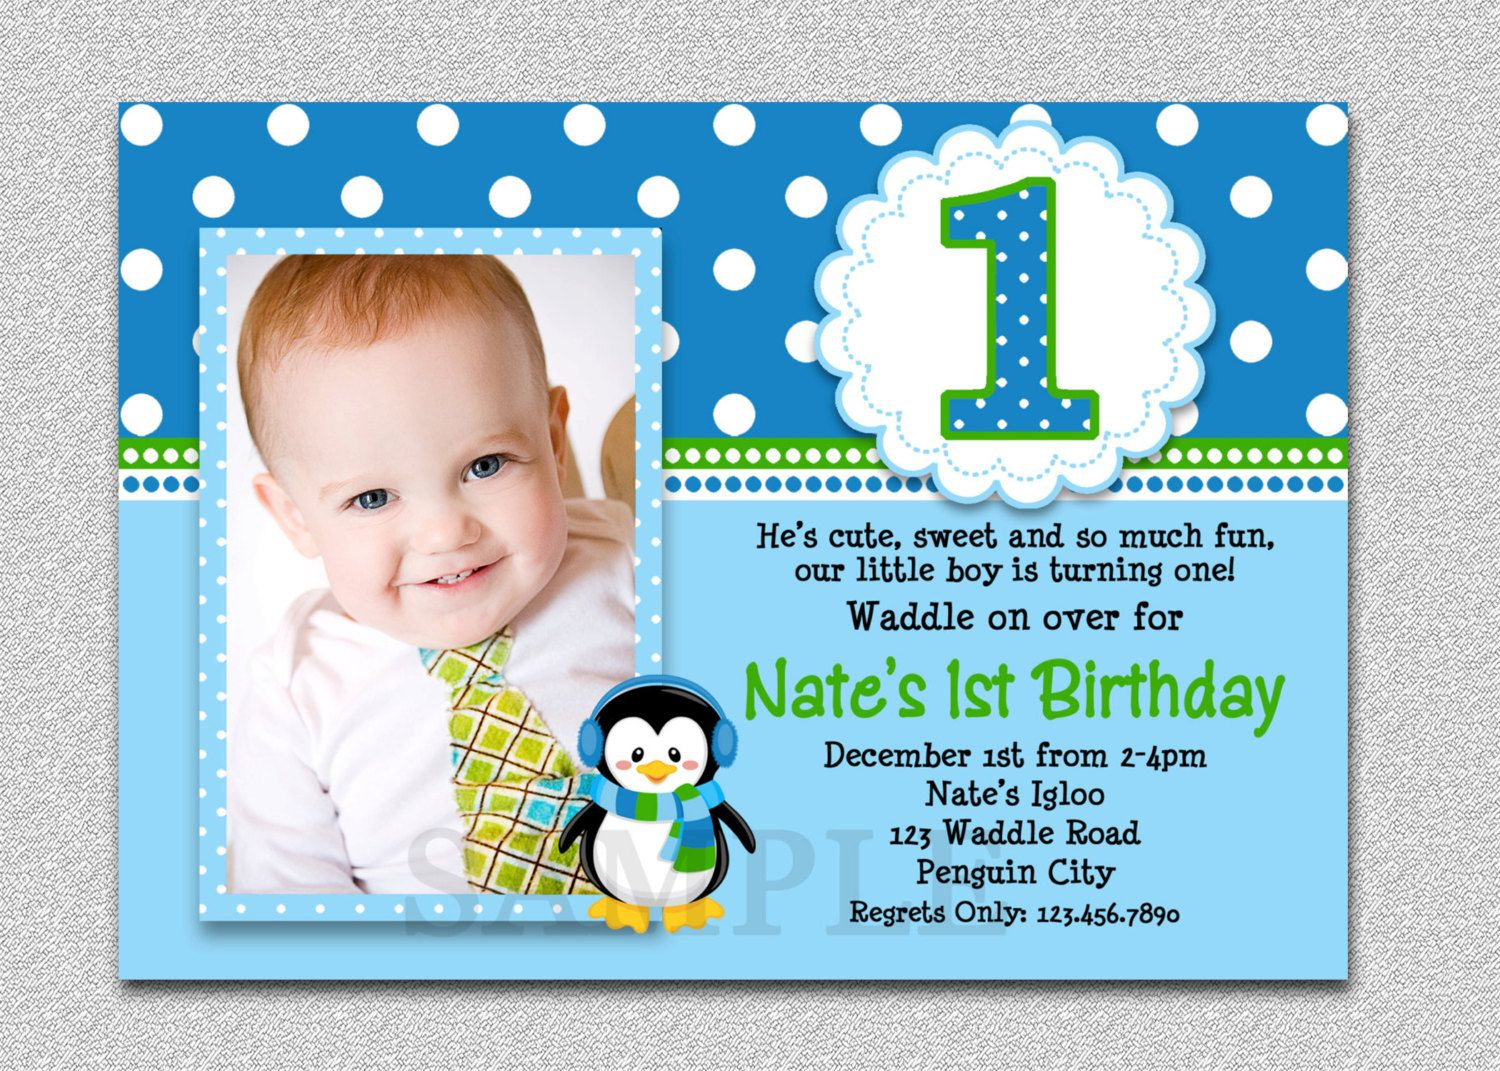 1st birthday invitations templates with photo free ; c7a8dcca3c532c77d0ff13234f5479a7